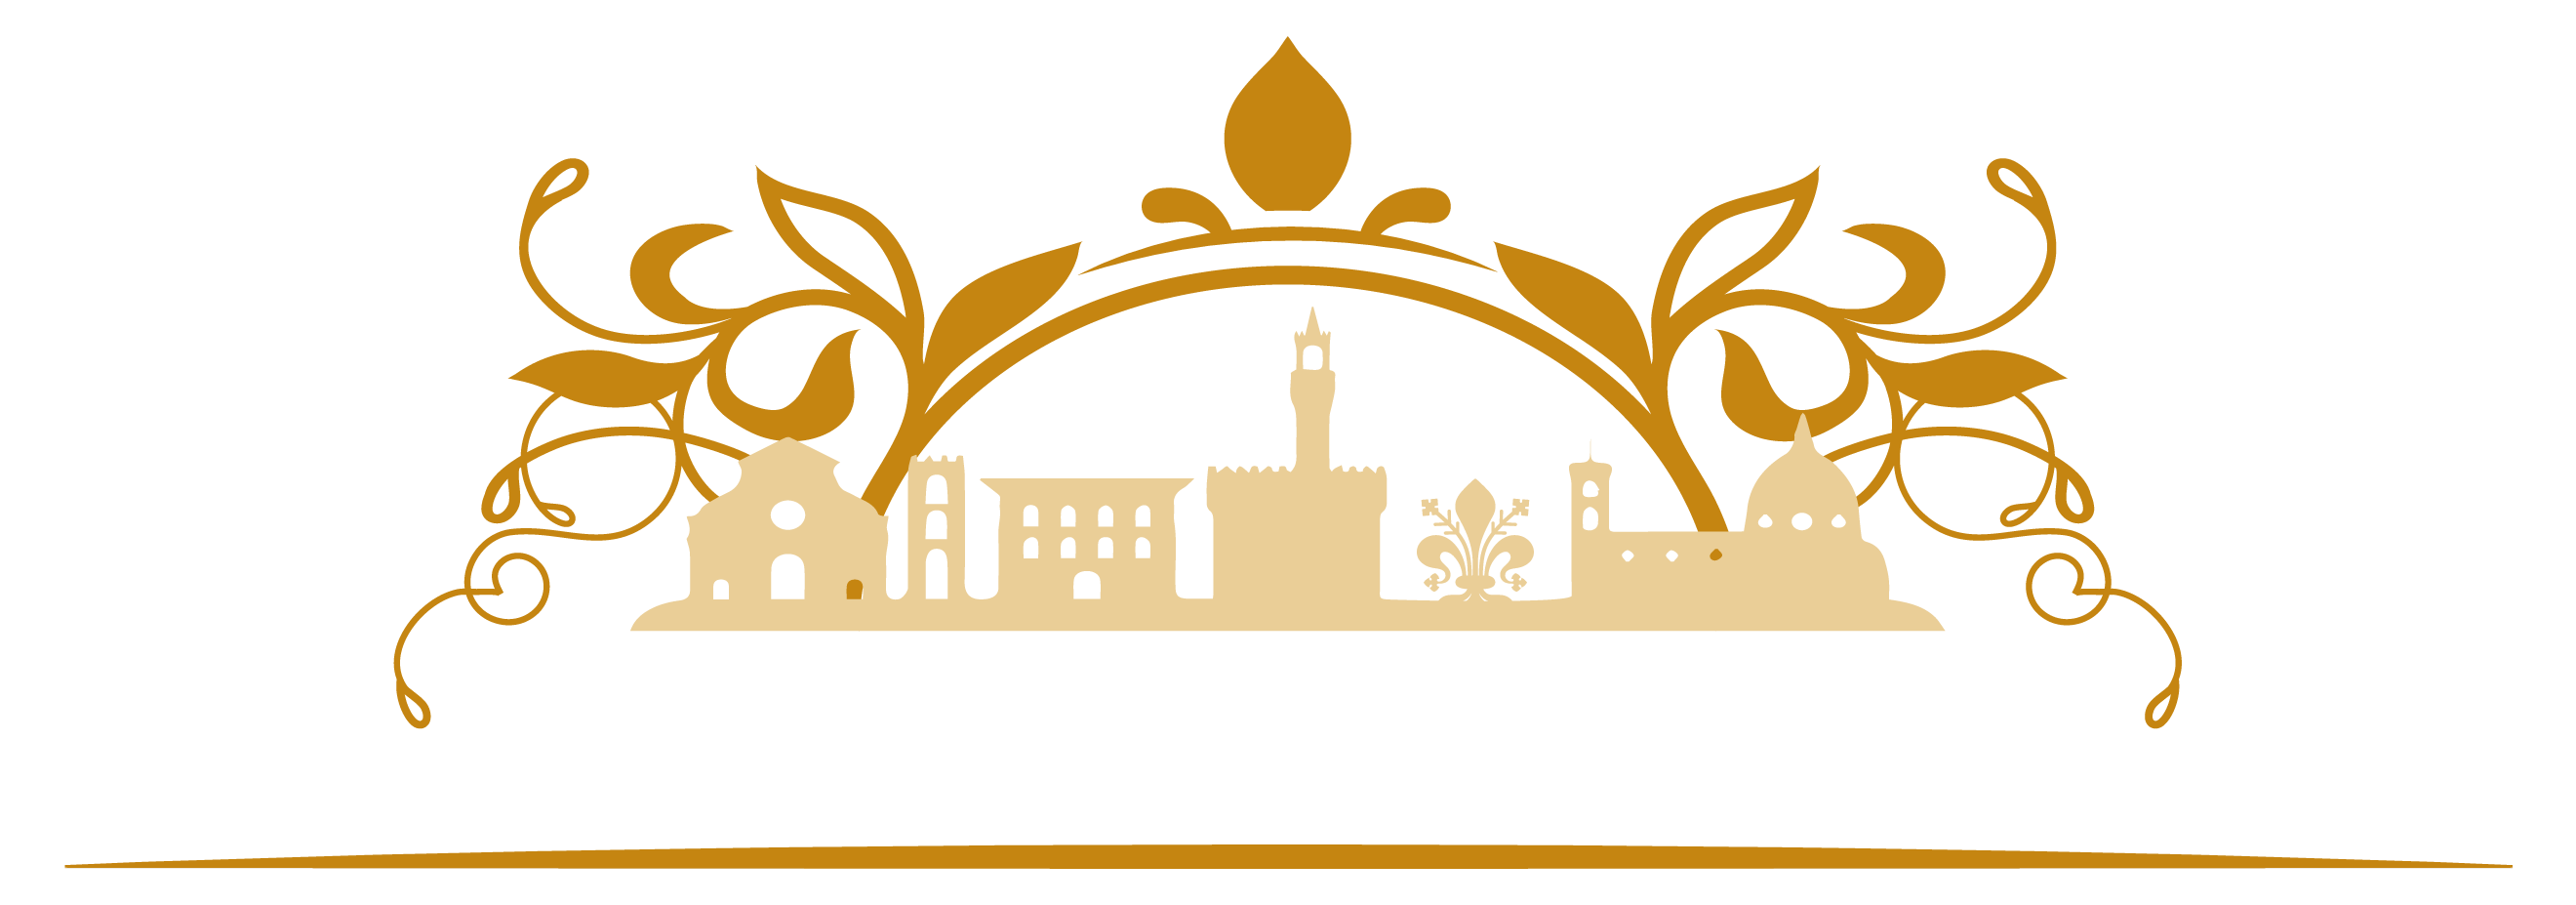 Capodanno a Firenze - New Year's eve in Florence